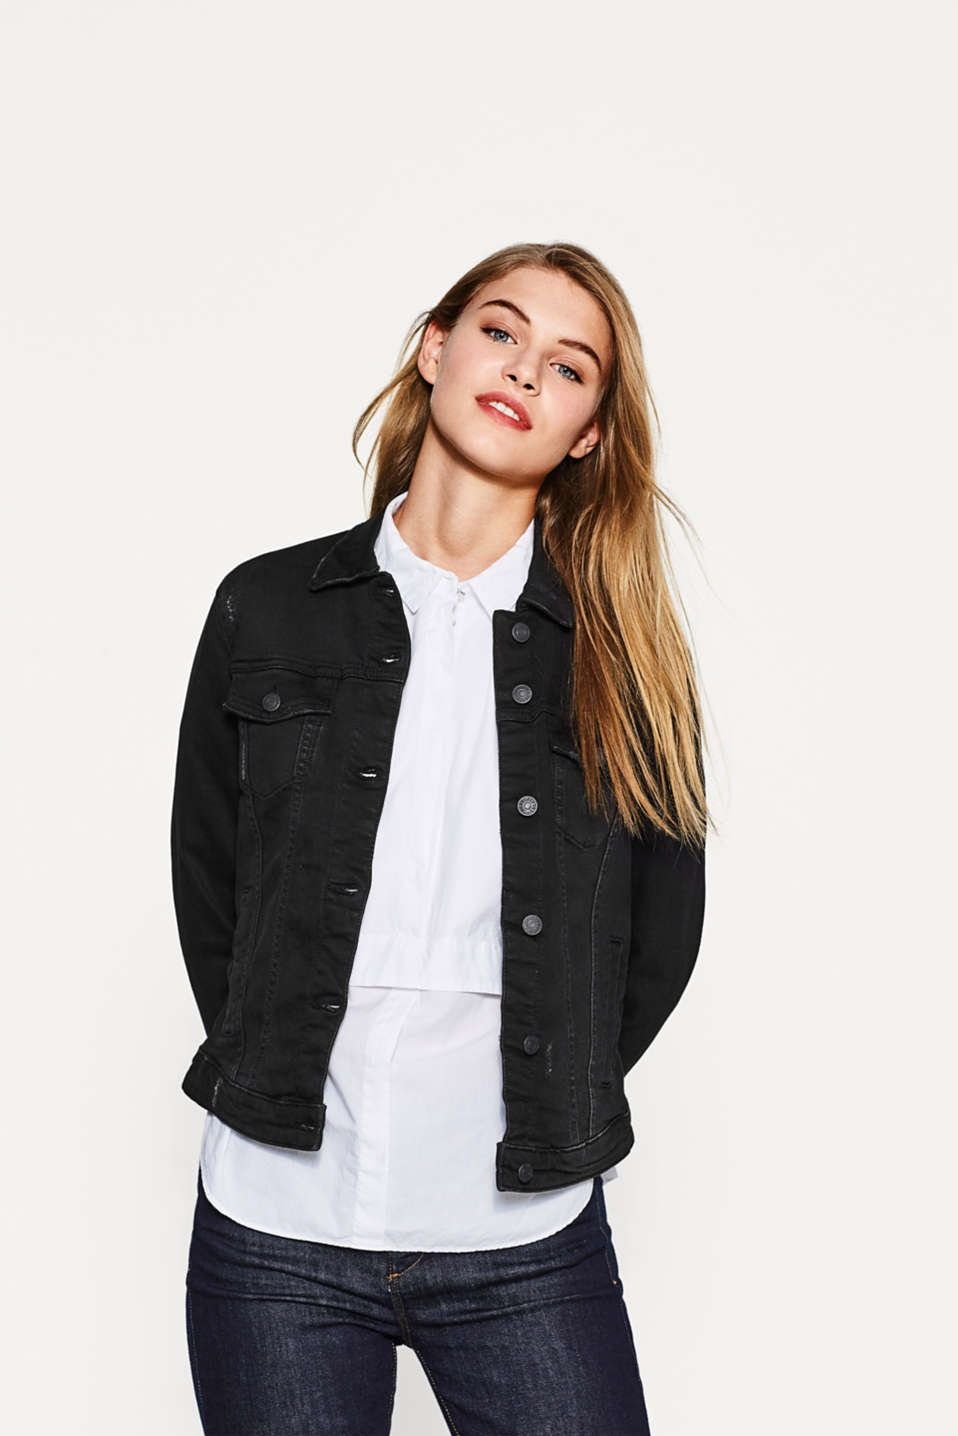 Esprit - Black Denim Jacke mit Stretch